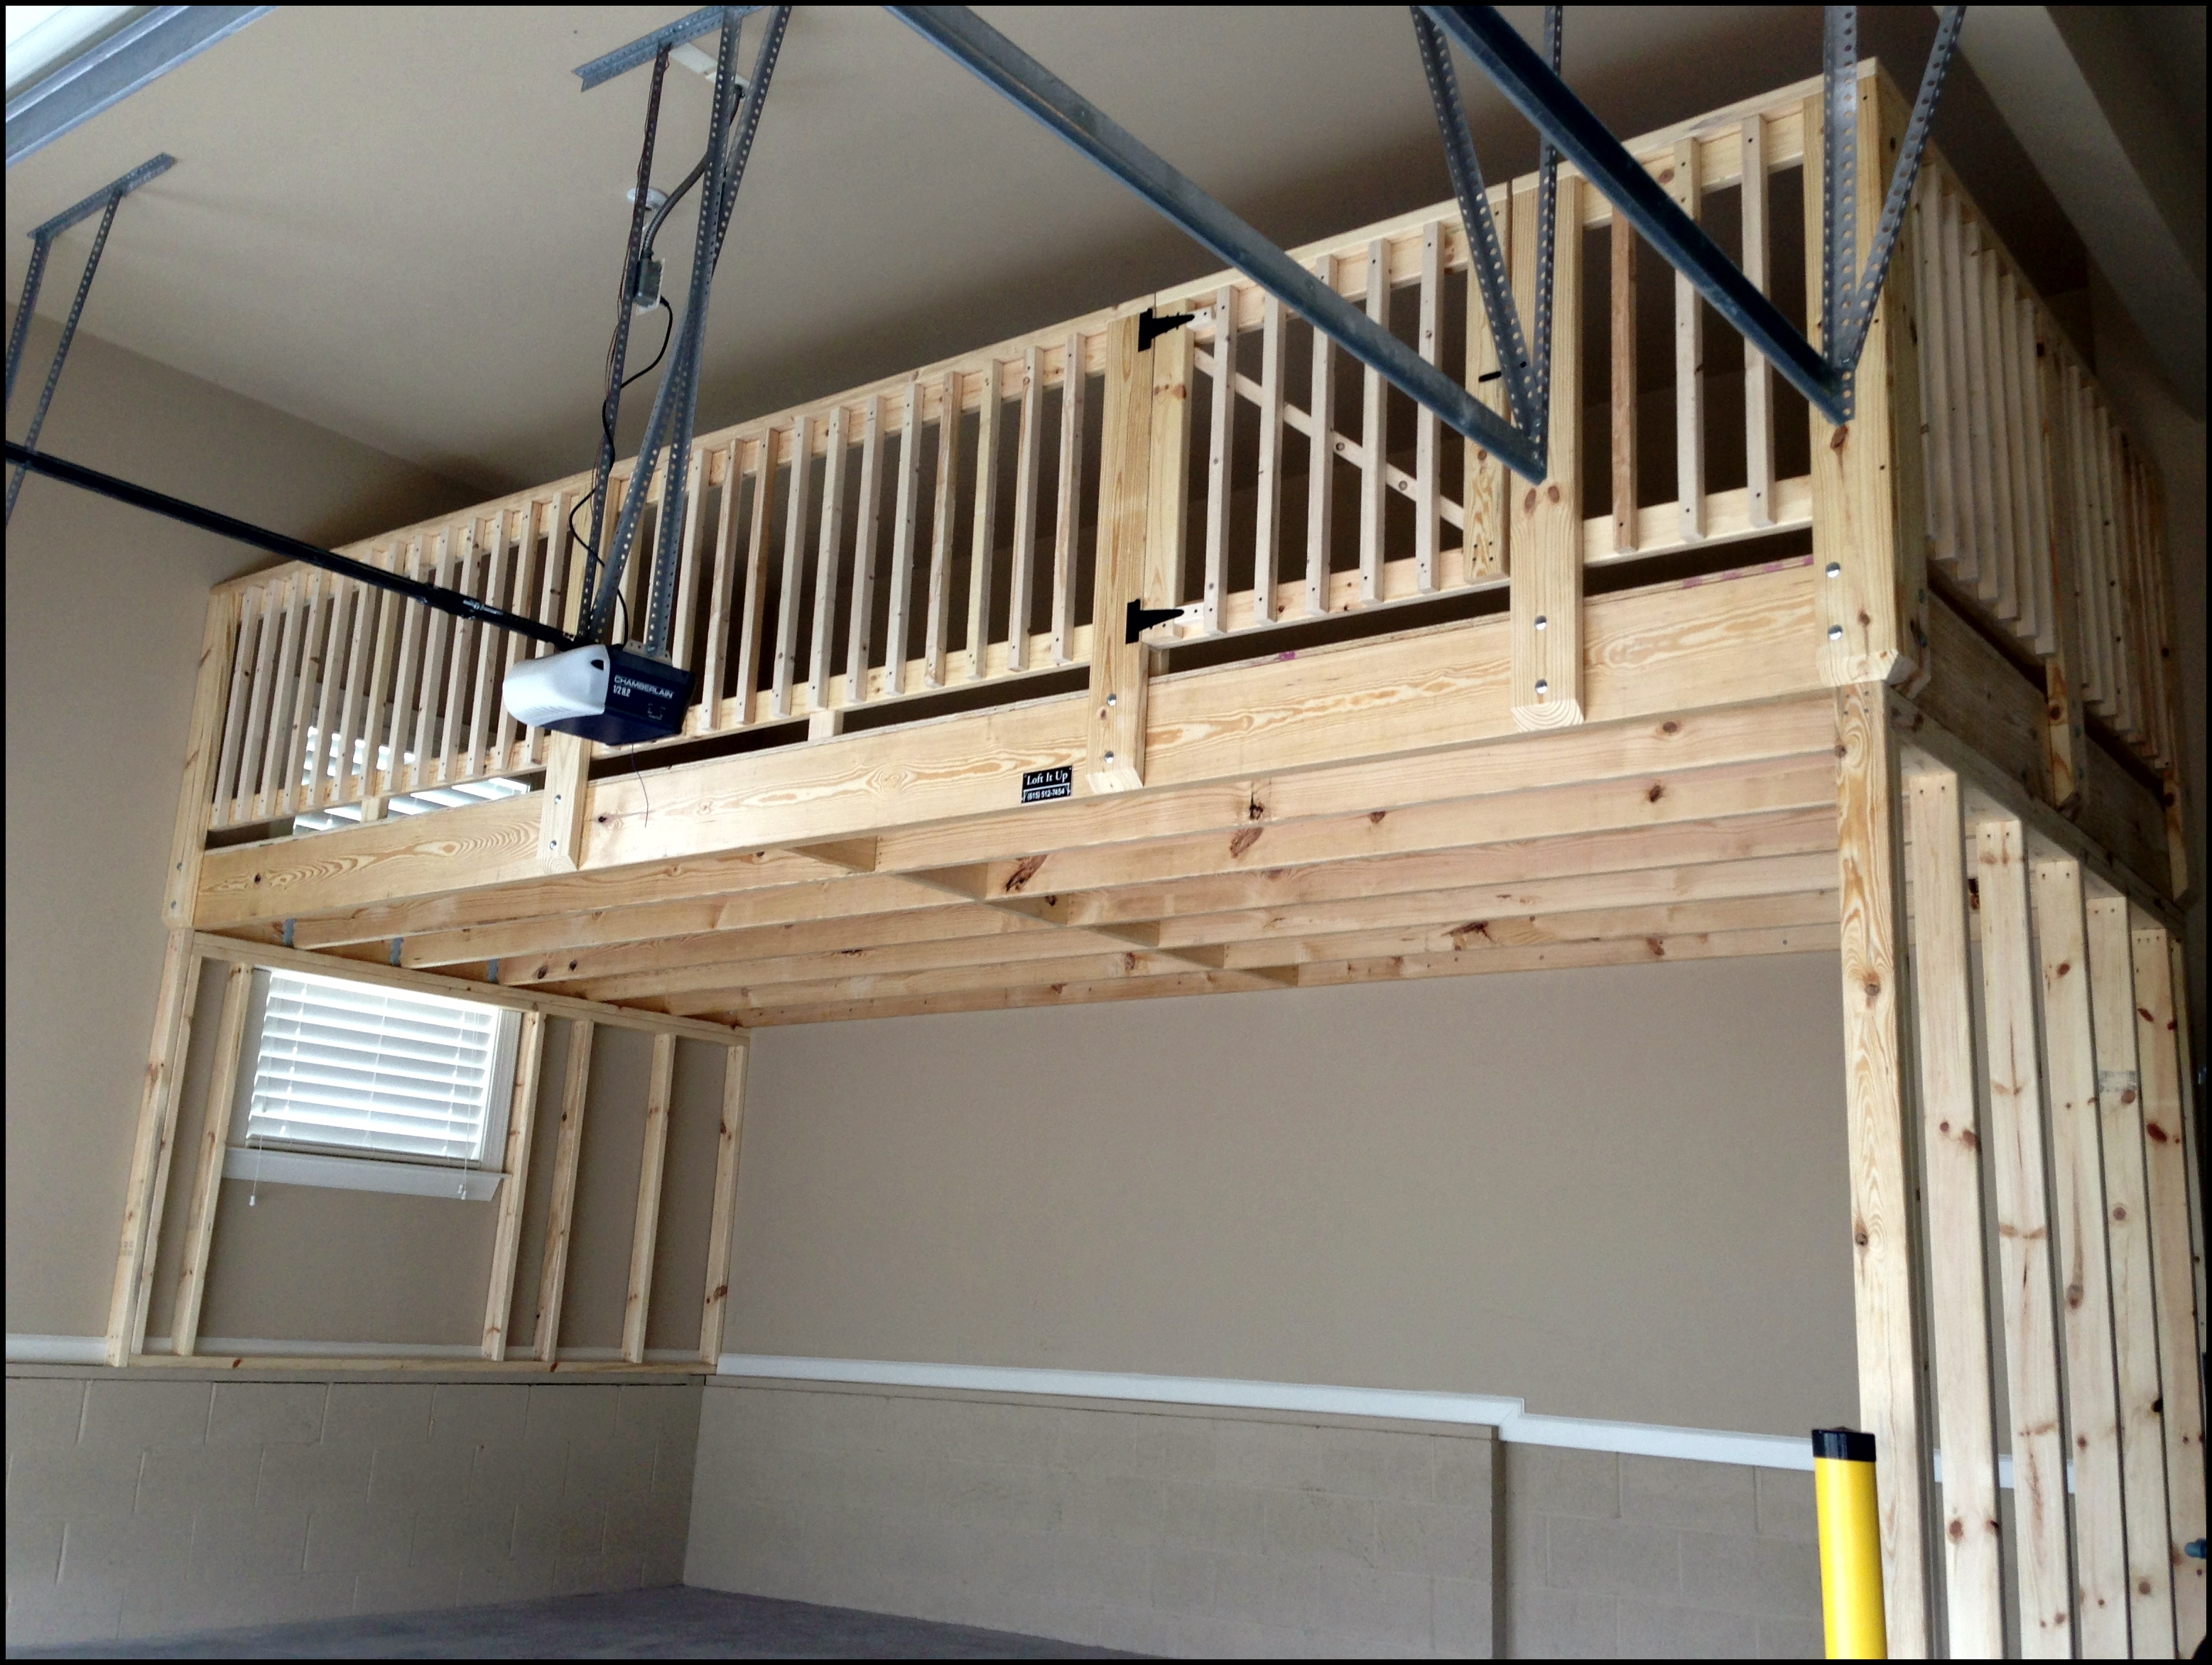 Garage Storage And Organization Nashville Tennessee: garage designs with loft